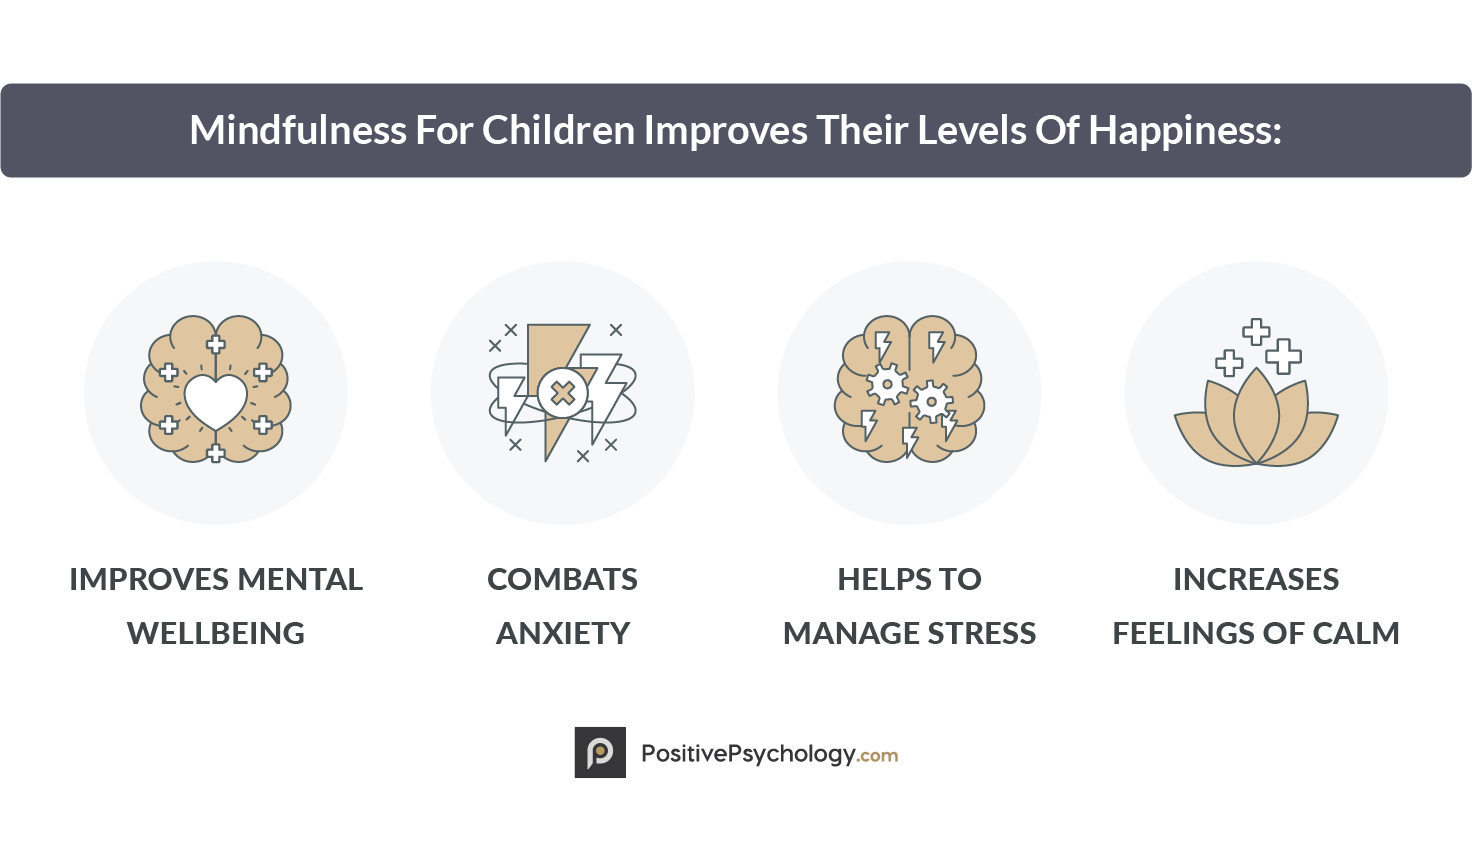 Mindfulness For Children Improves Their Levels Of Happiness